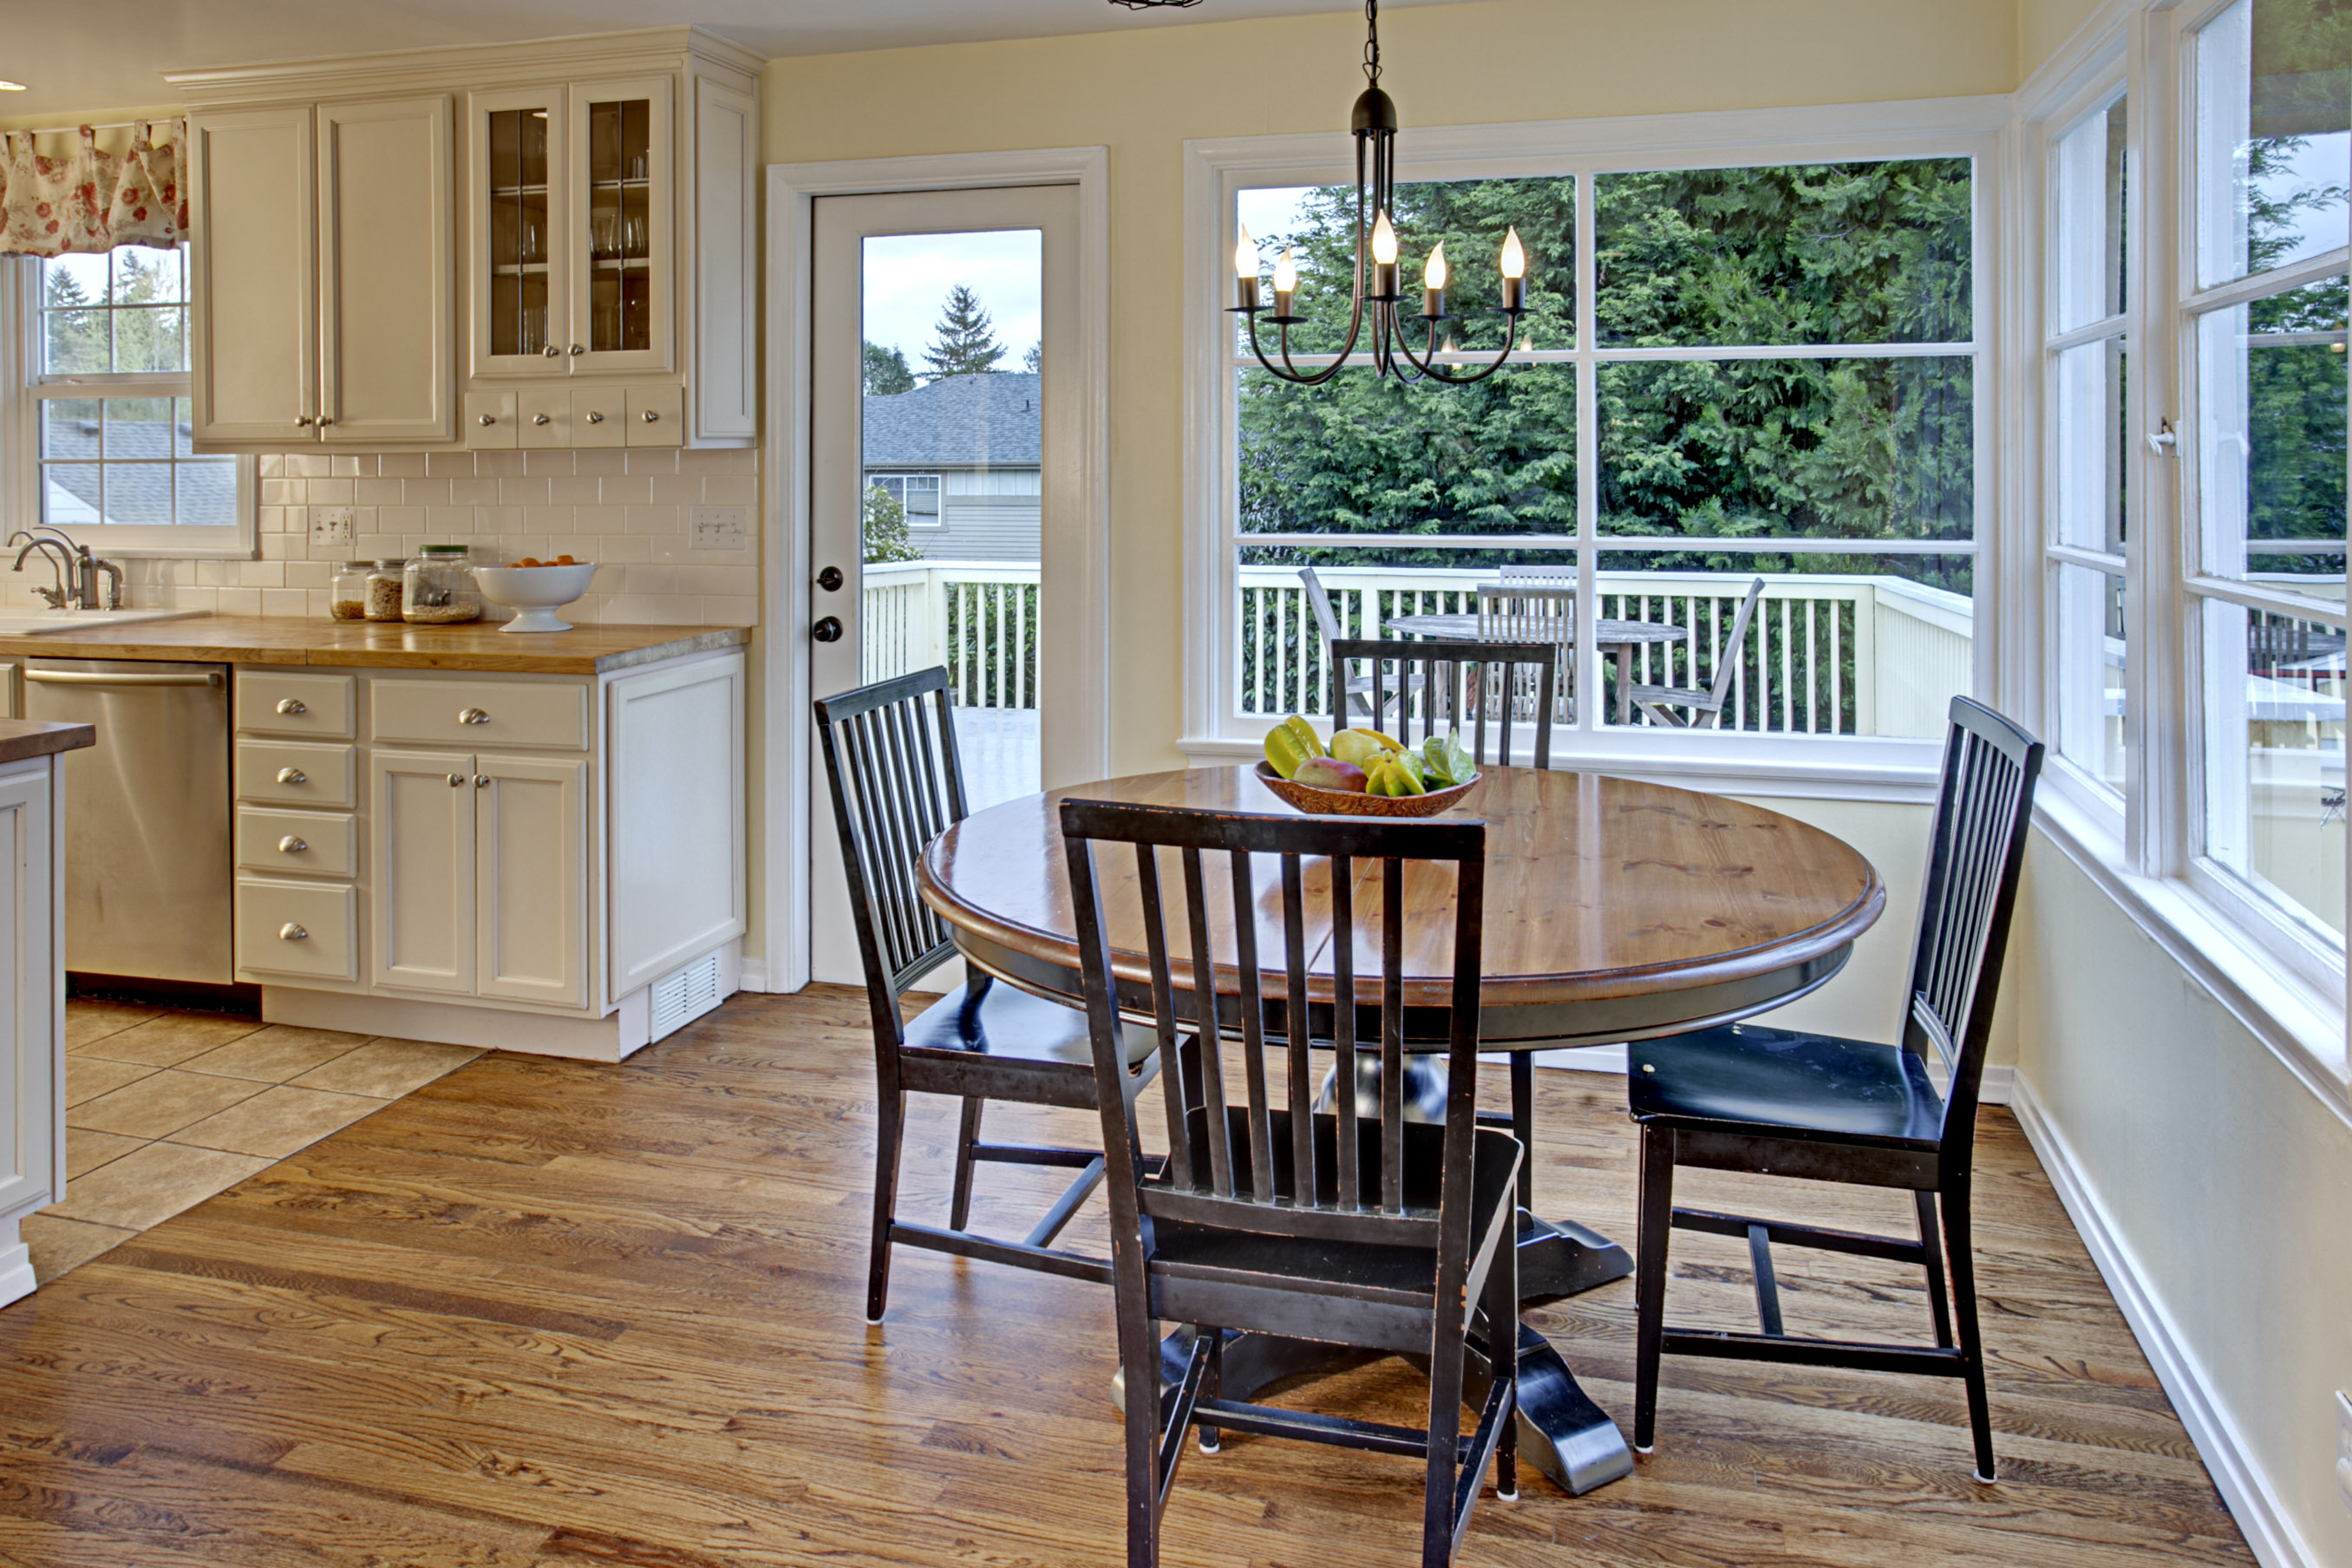 Cape cod kitchen in seattle hooked on houses for Cape cod remodel ideas